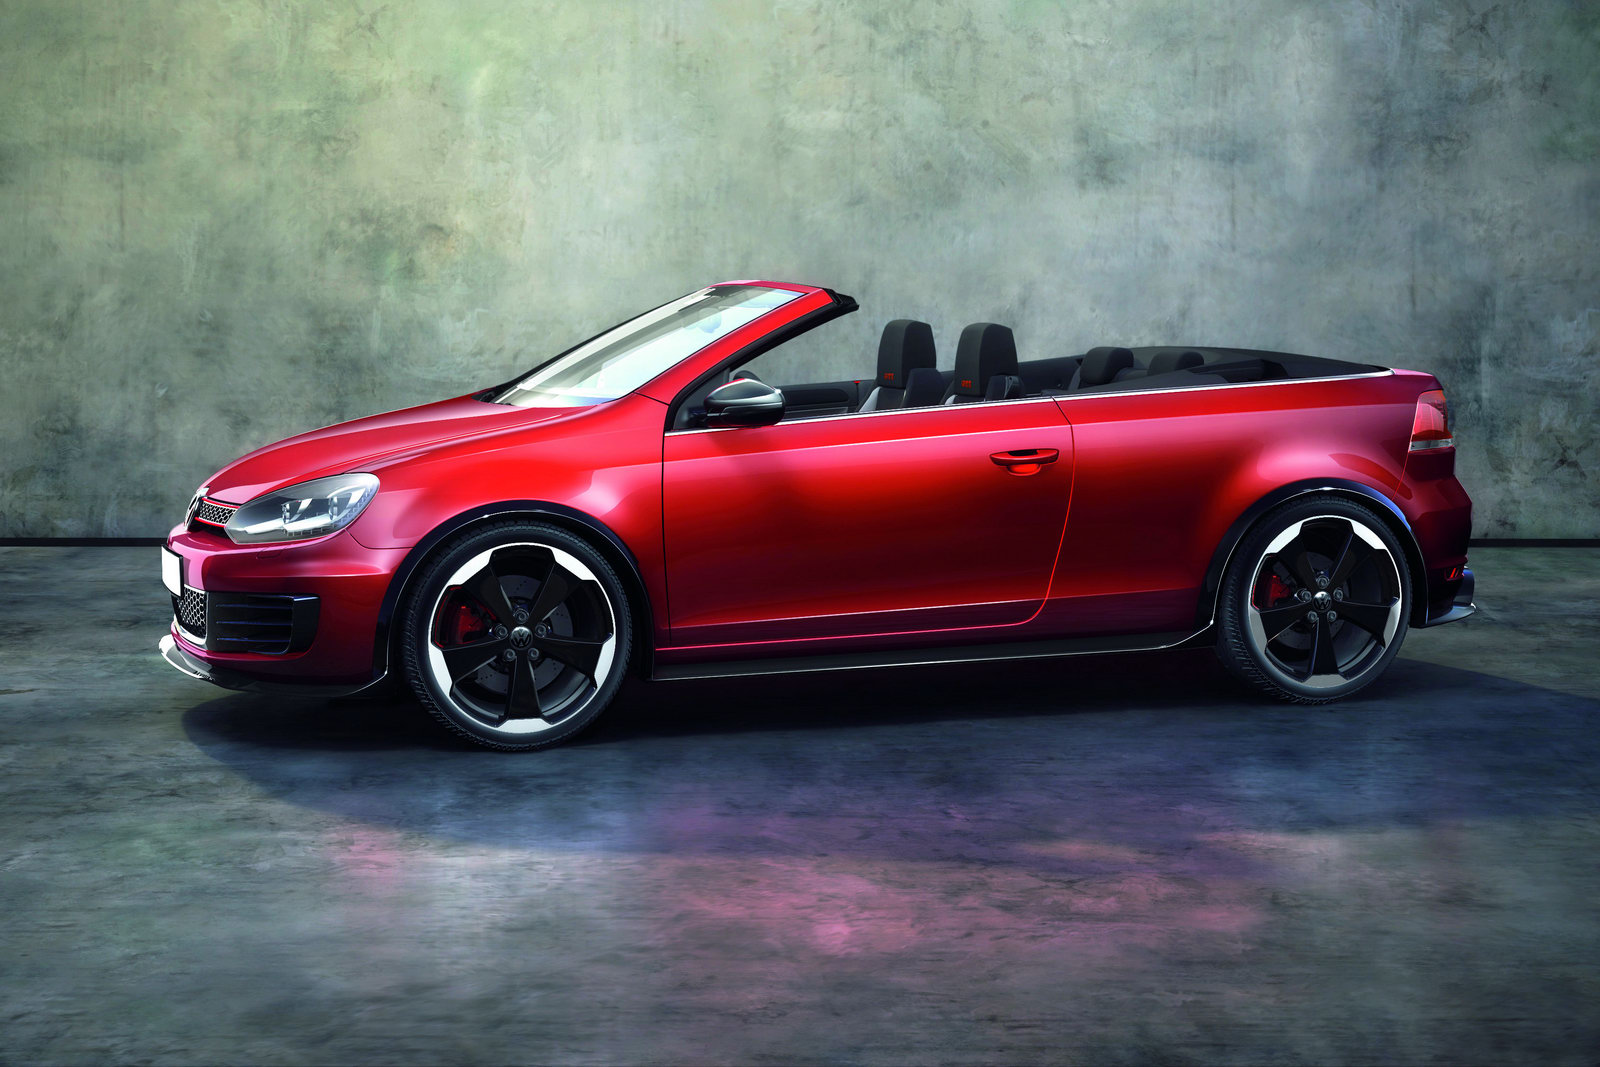 2019 Volkswagen Golf GTI Concept photo - 4